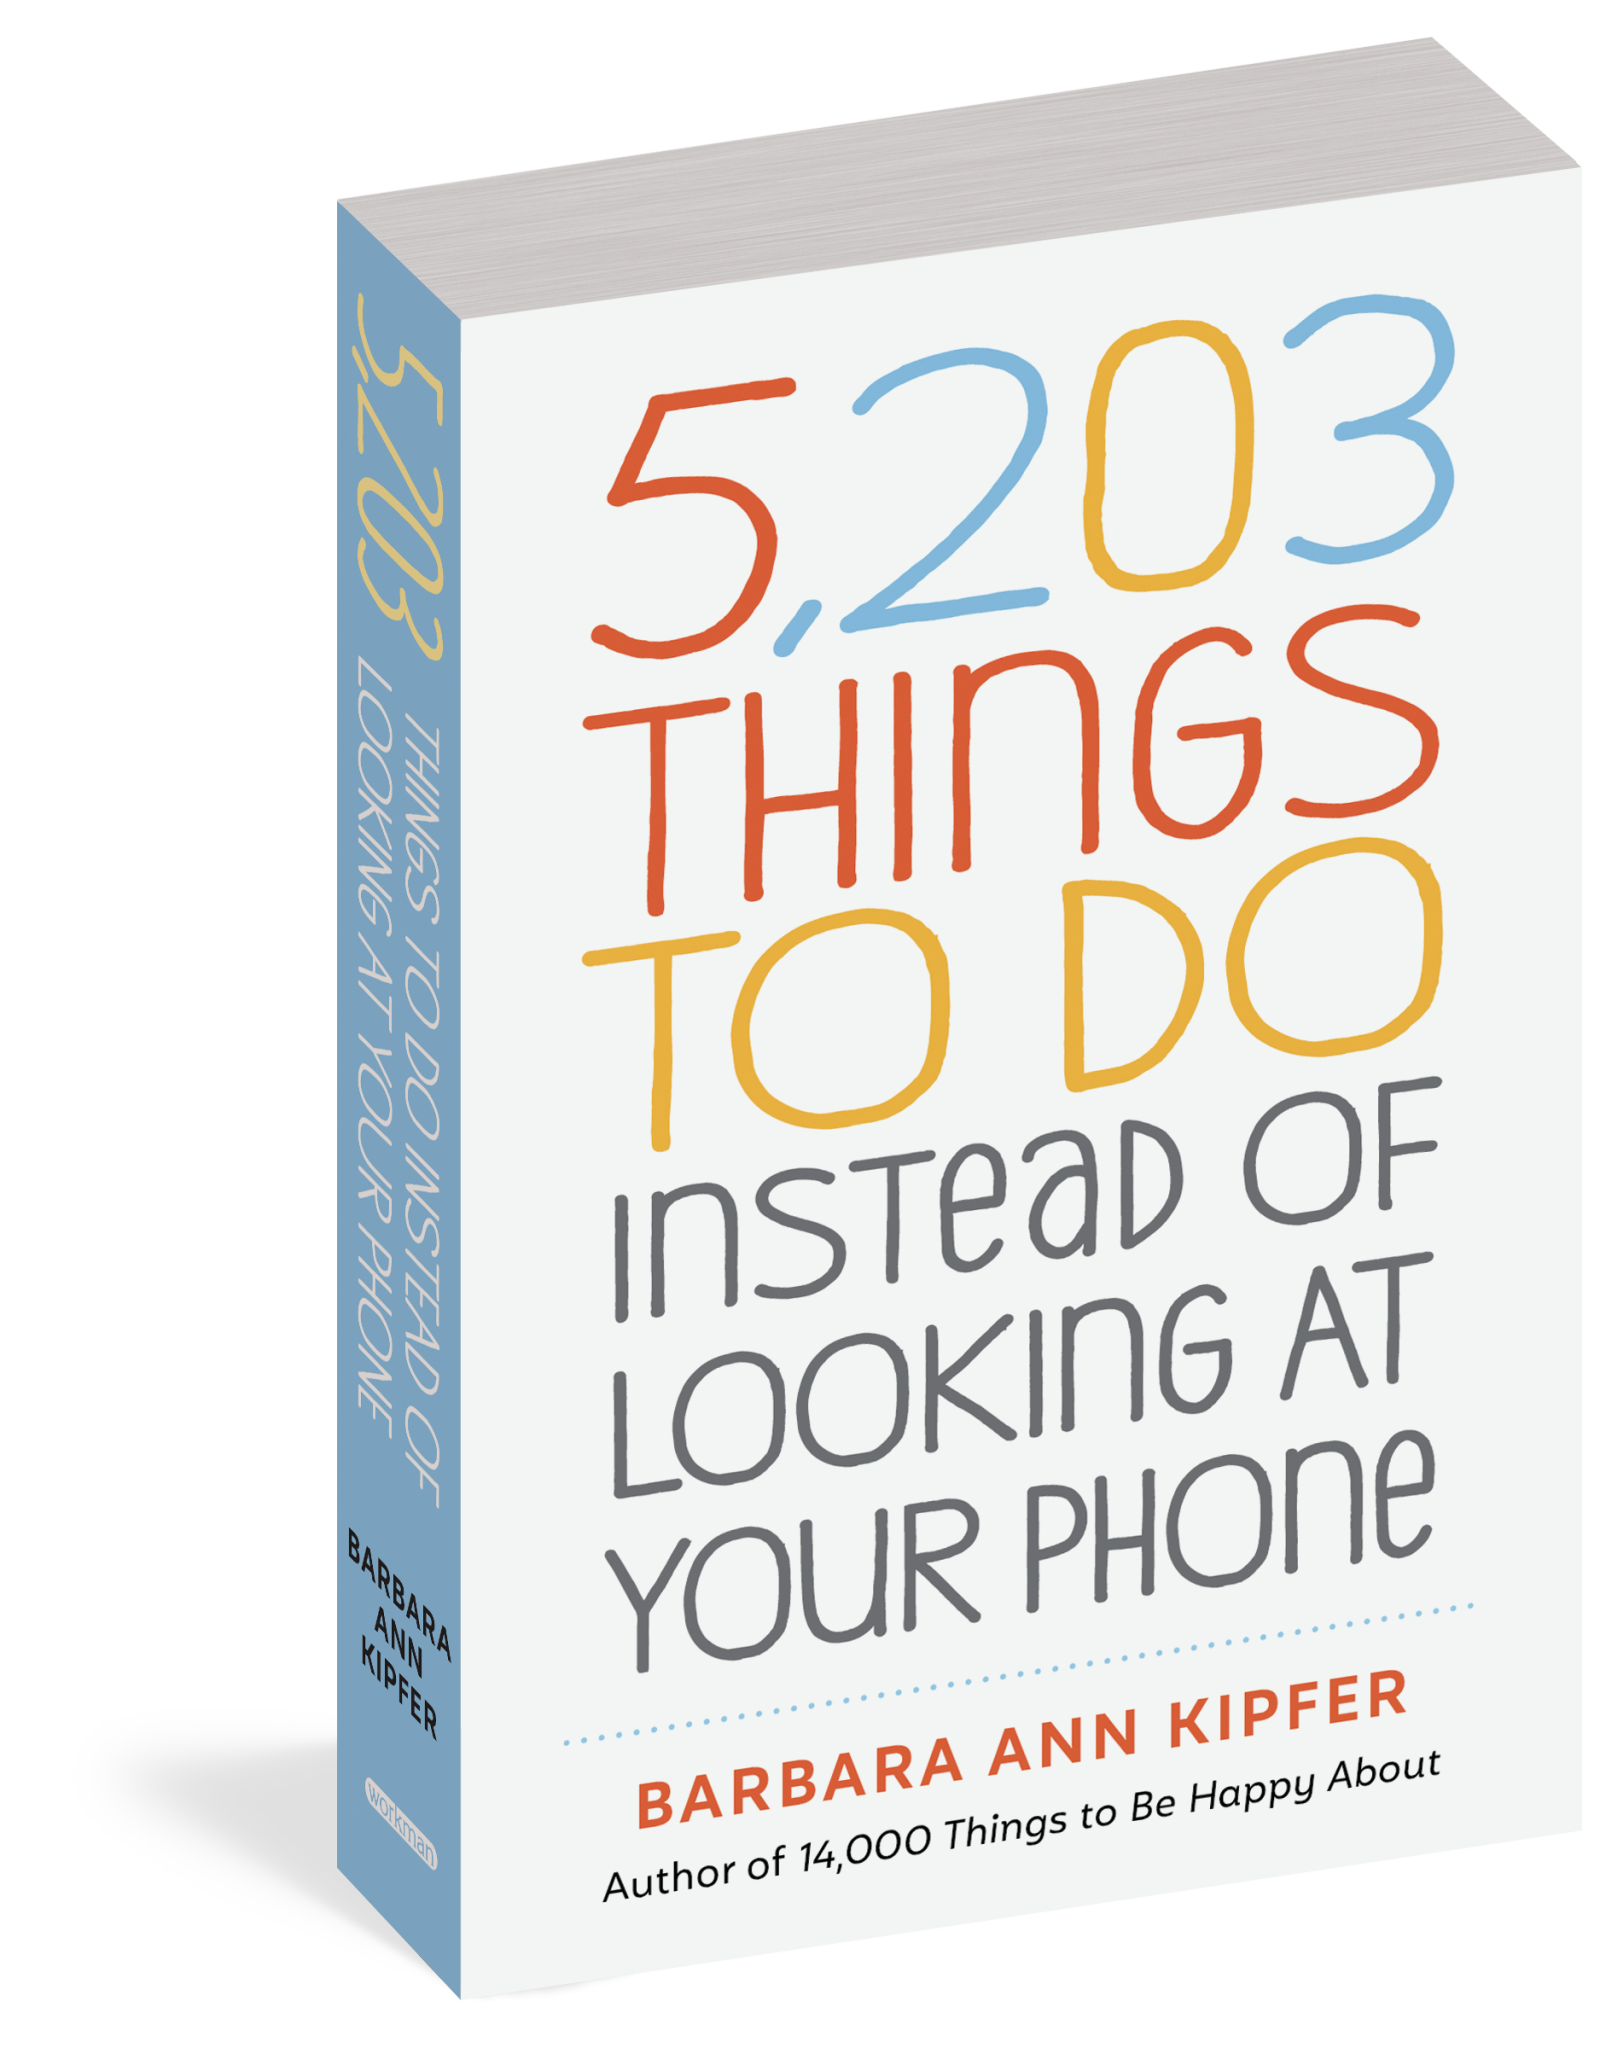 5,203 Things to Do Instead of Looking at Your Phone by Barbara Ann Kipfer